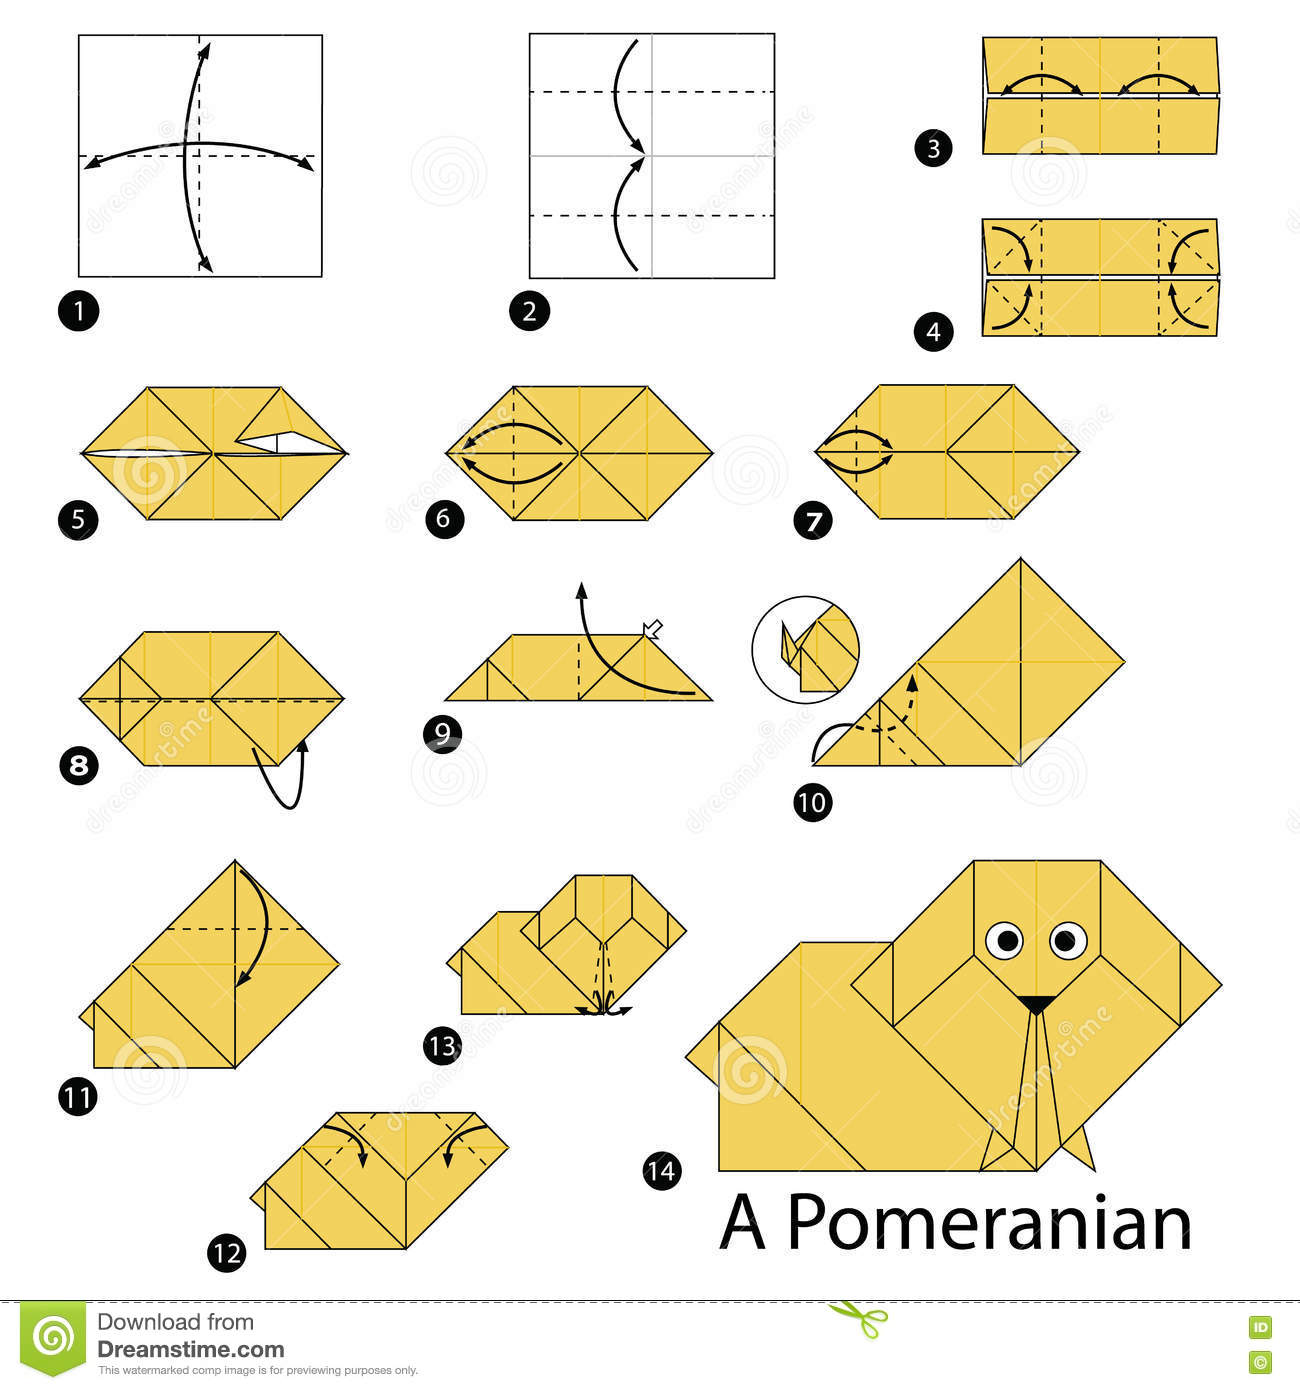 Origami dog face how to origami - Another Paper Origami Dog Face Images You Might Like